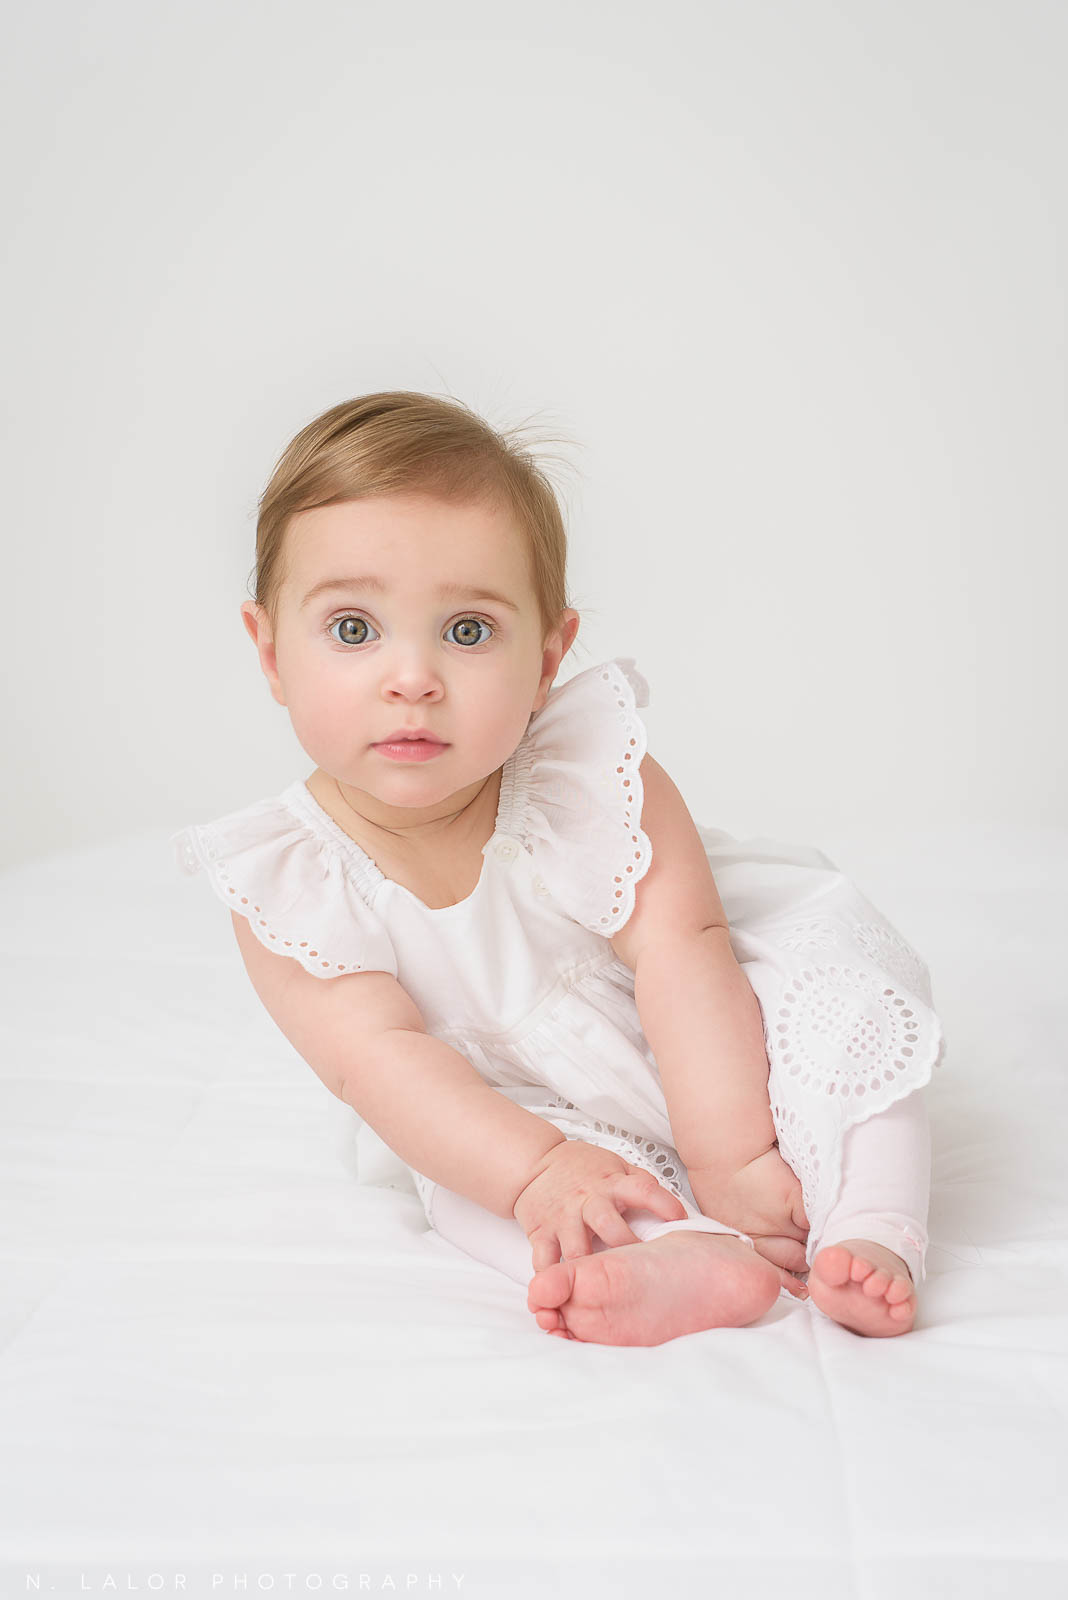 Image of baby in white dress sitting. Milestone Sessions by N. Lalor Photography. Studio in Greenwich, Connecticut.